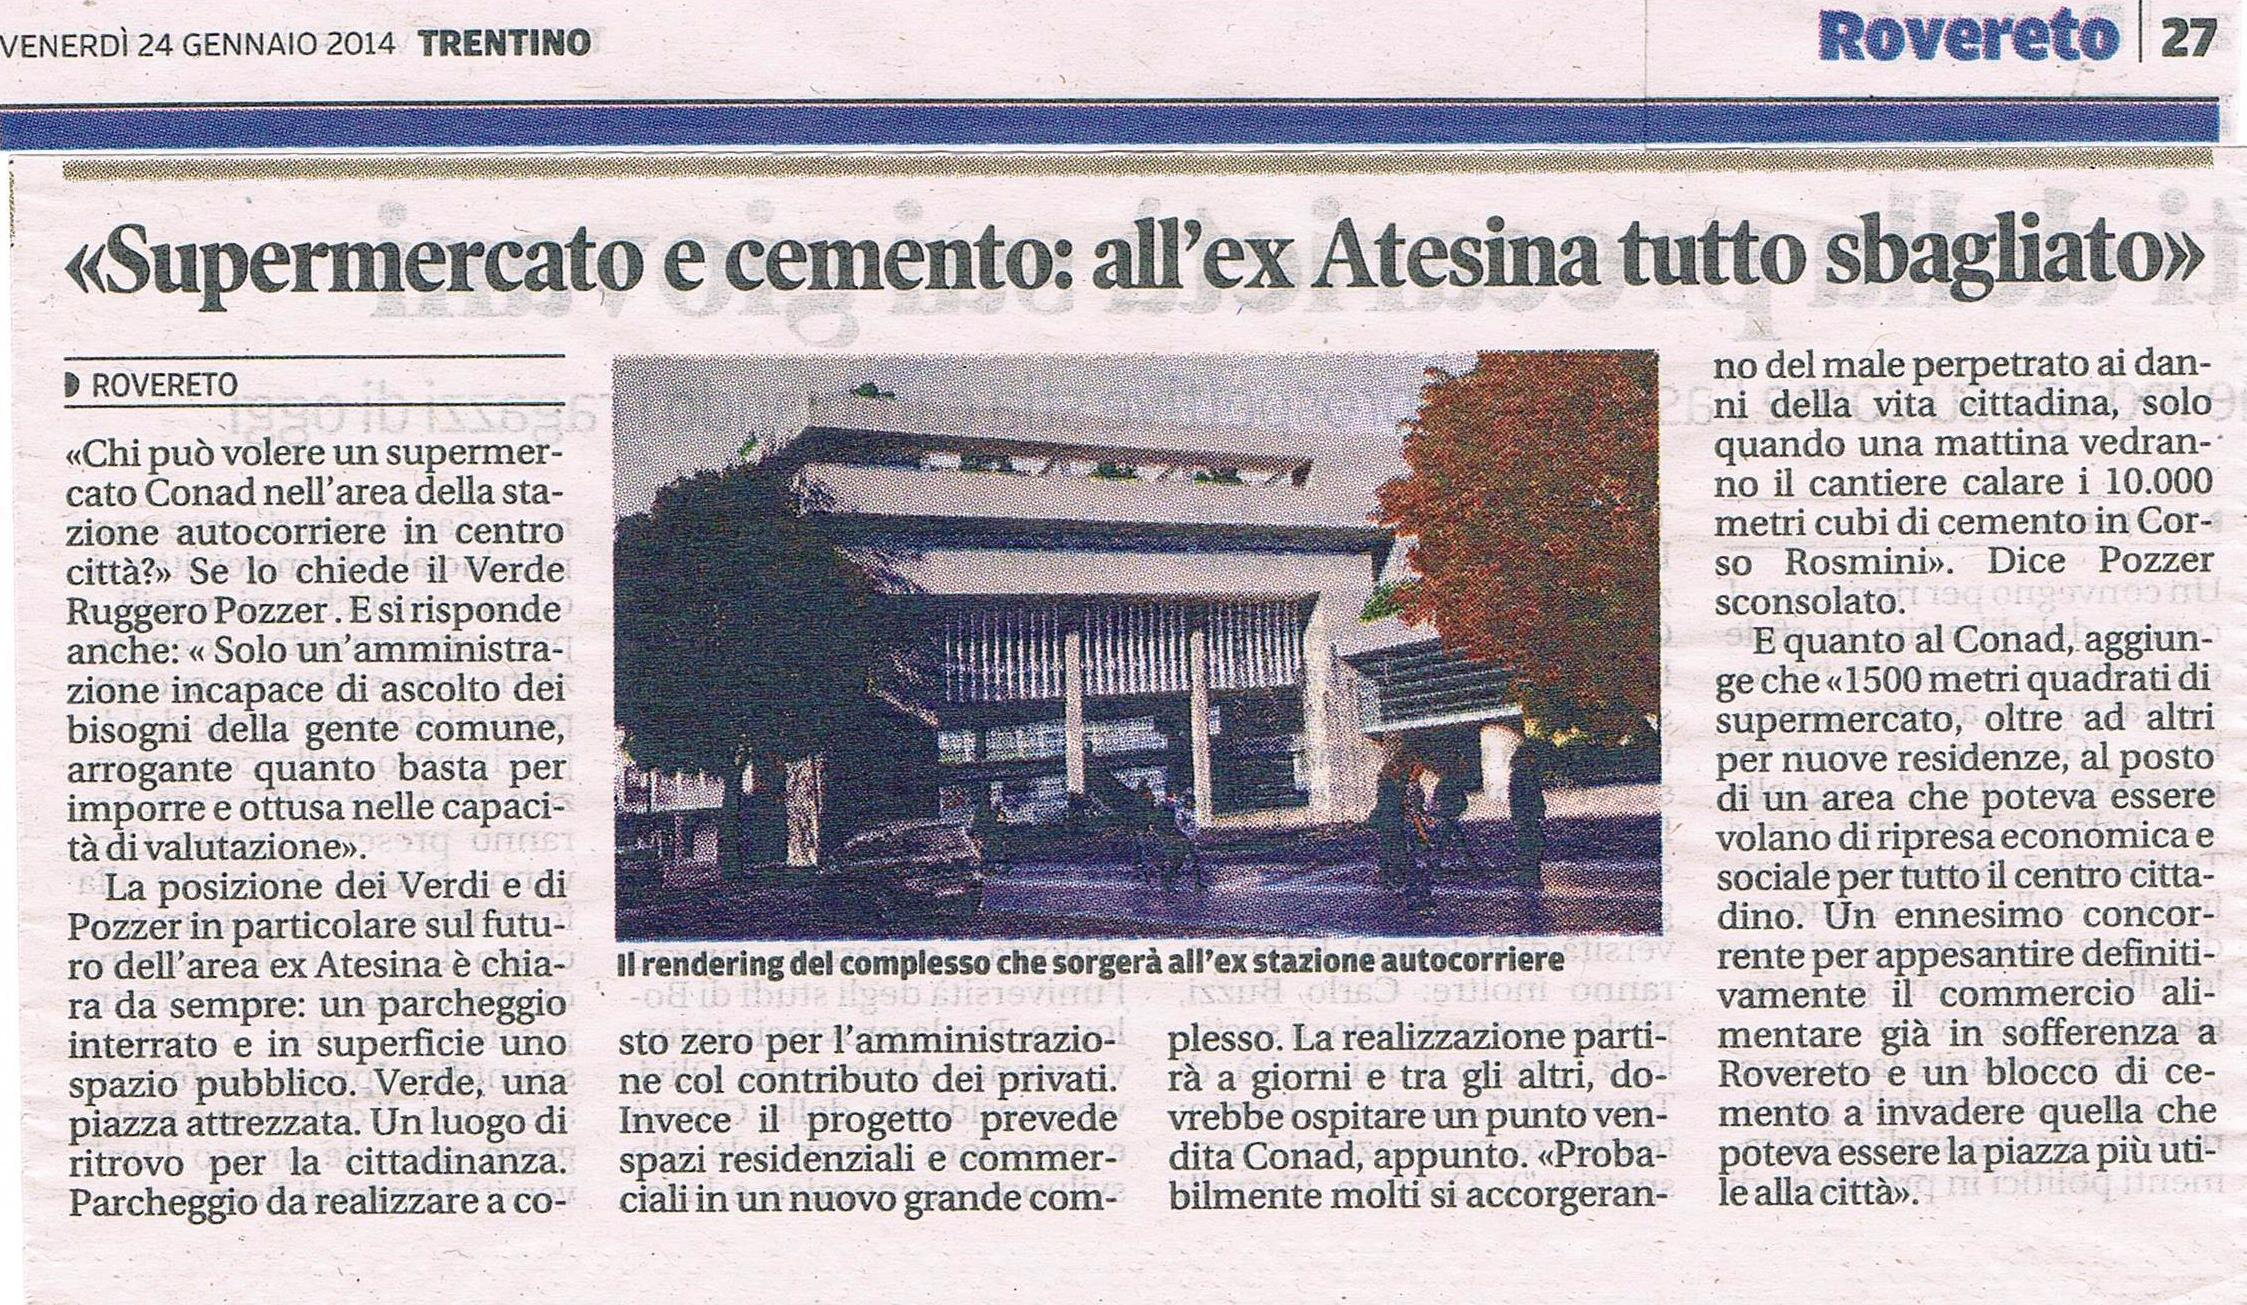 2014-01-24 TN autocorriere 001